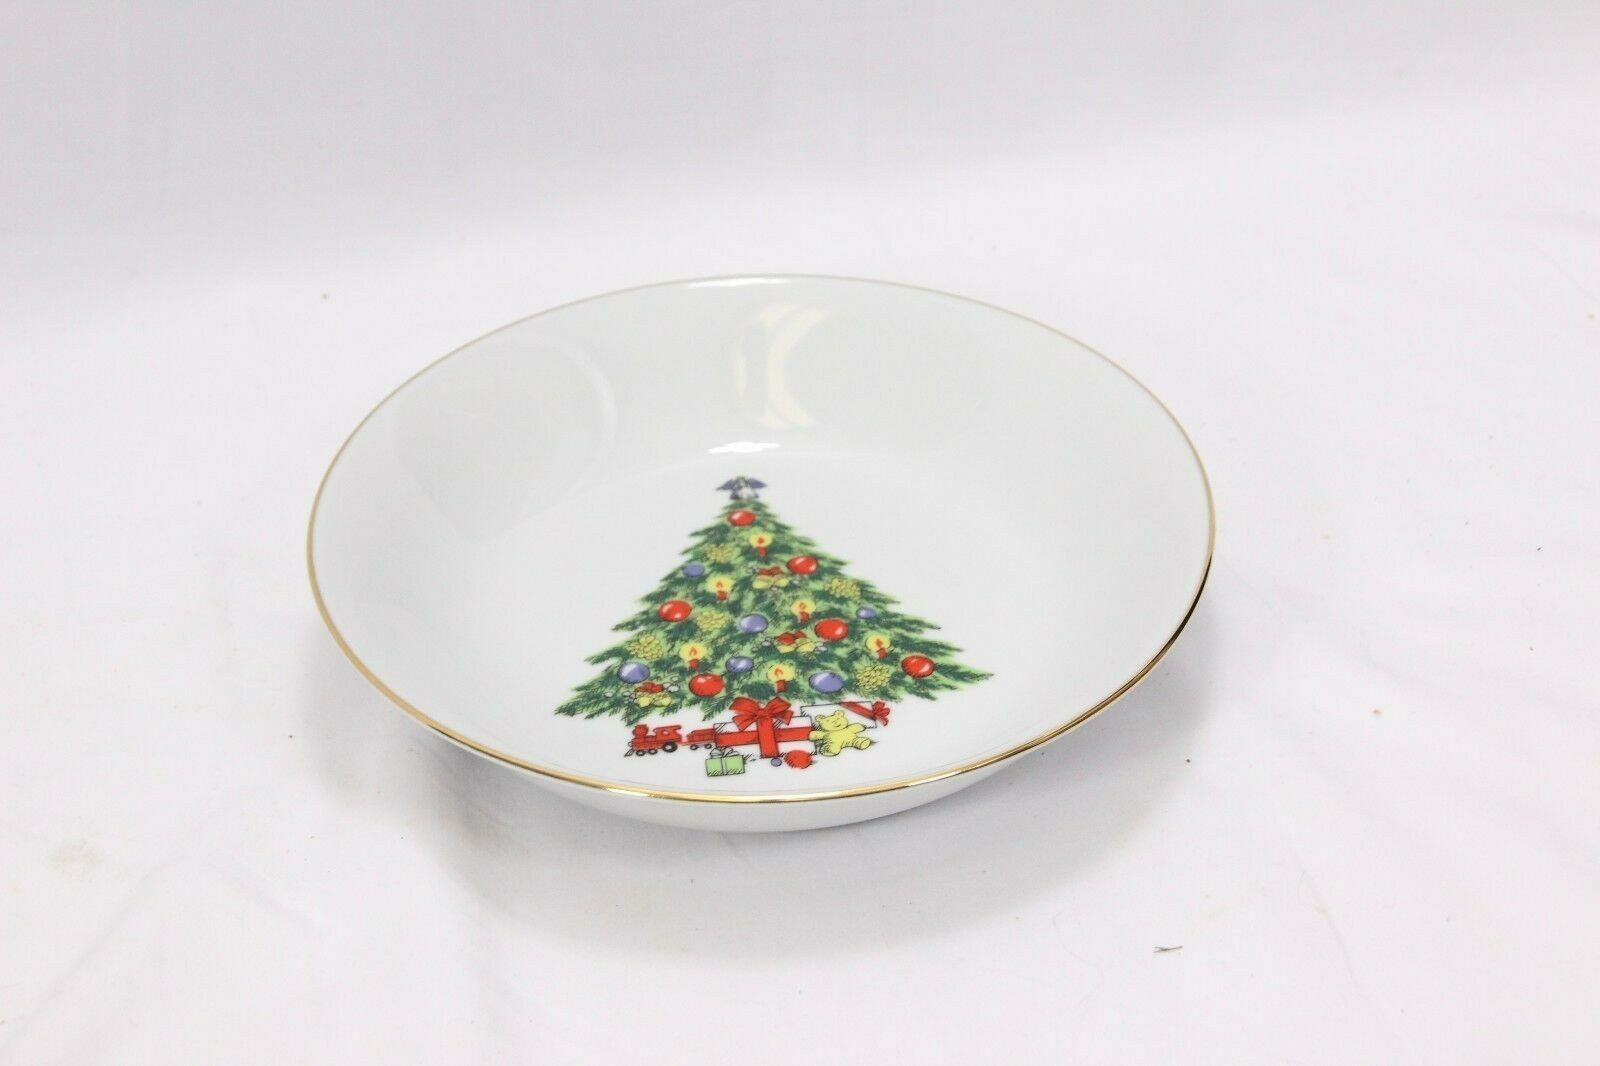 Jamestown Xmas Treasure Bowls Cups Saucers Lot of 12 image 10